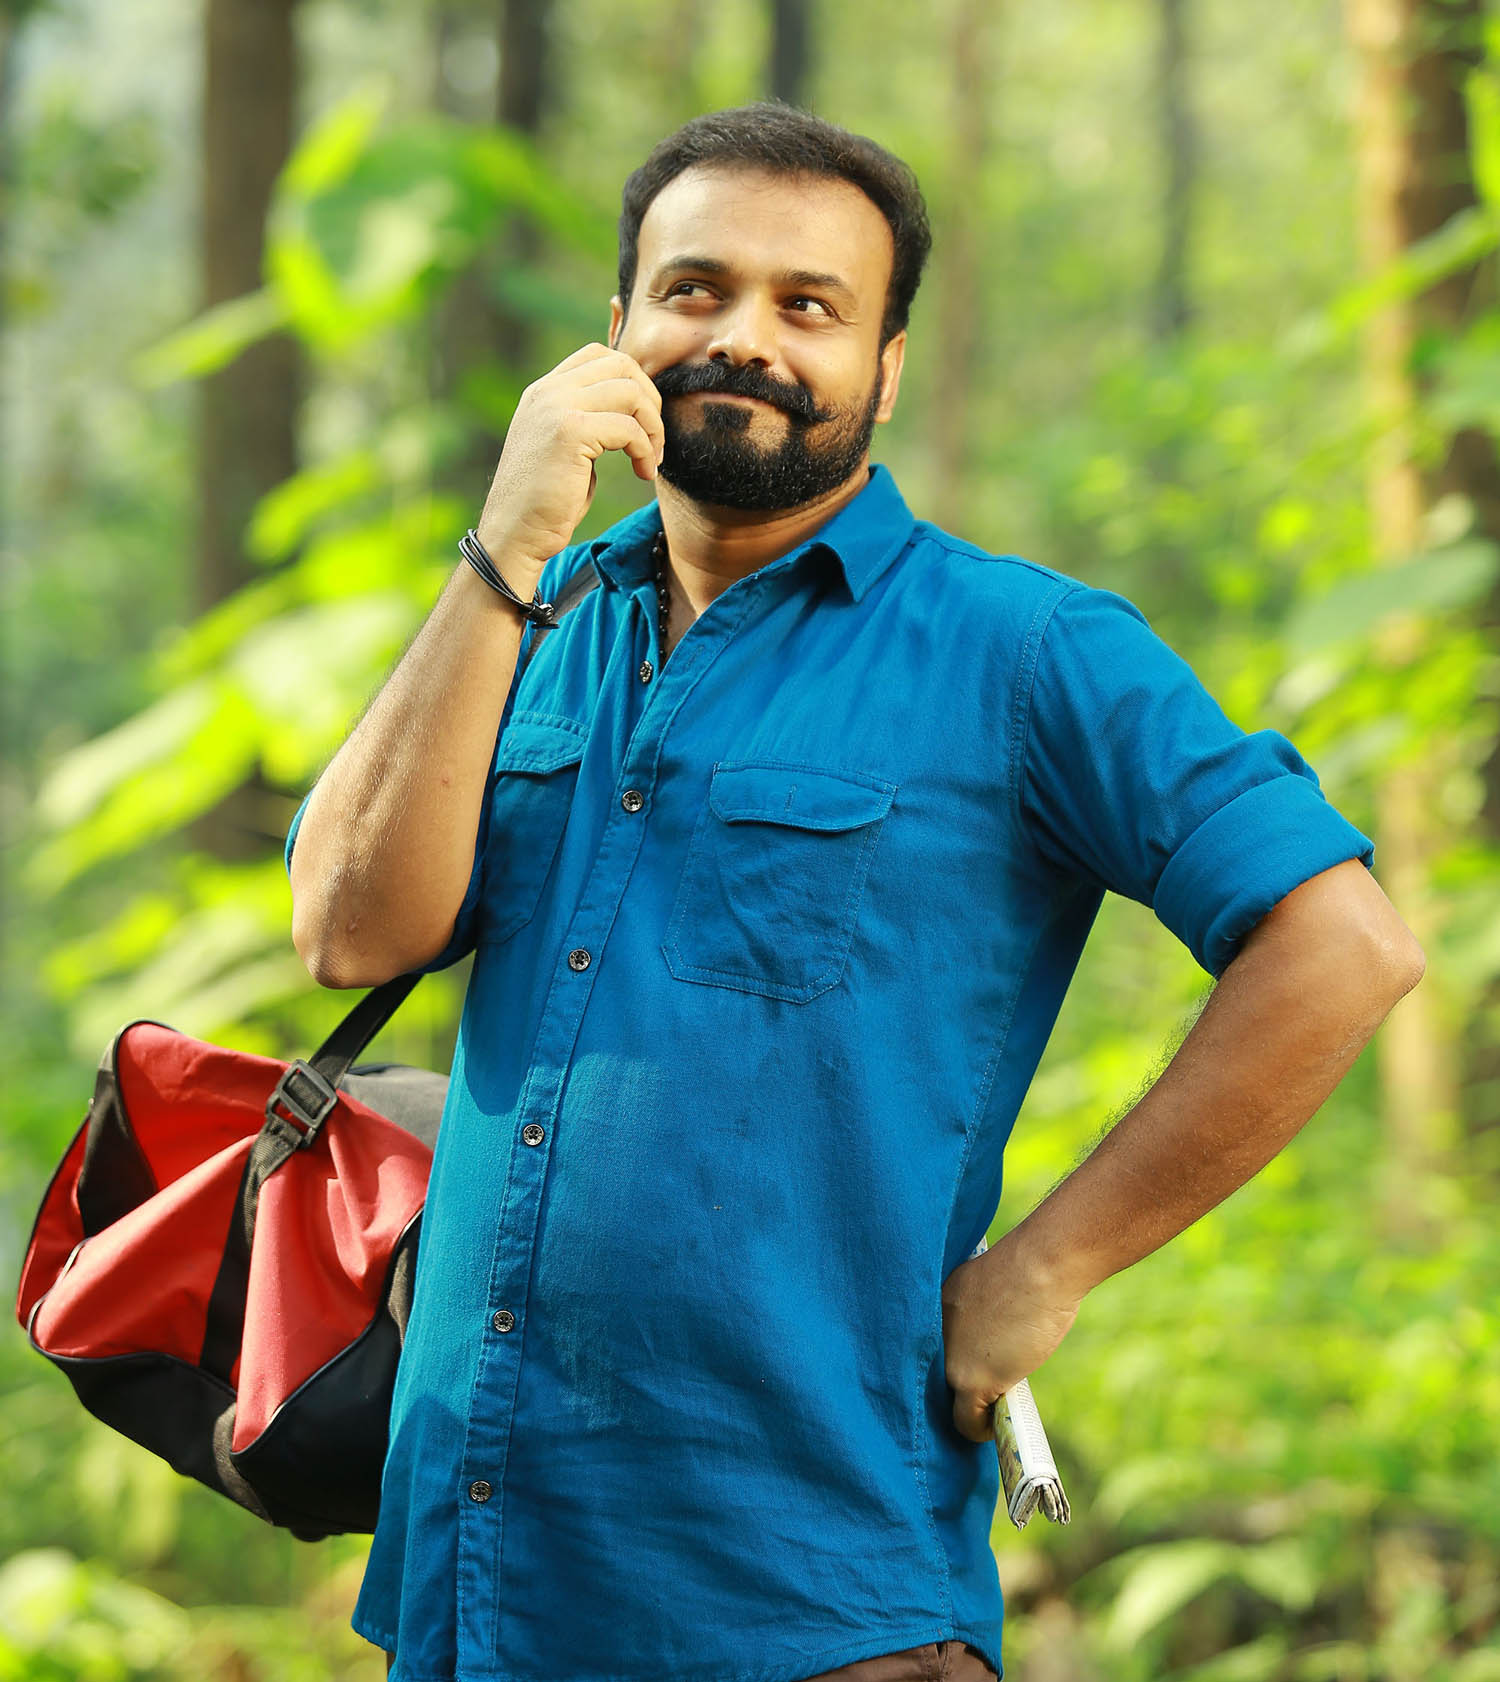 shikkari shambu review, shikkari shambu latest news, shikkari shambu reports, kunchacko boban latest news, kunchacko boban new movie, kunchacko boban in shikkari shambu, shikkari shambu hit or flop